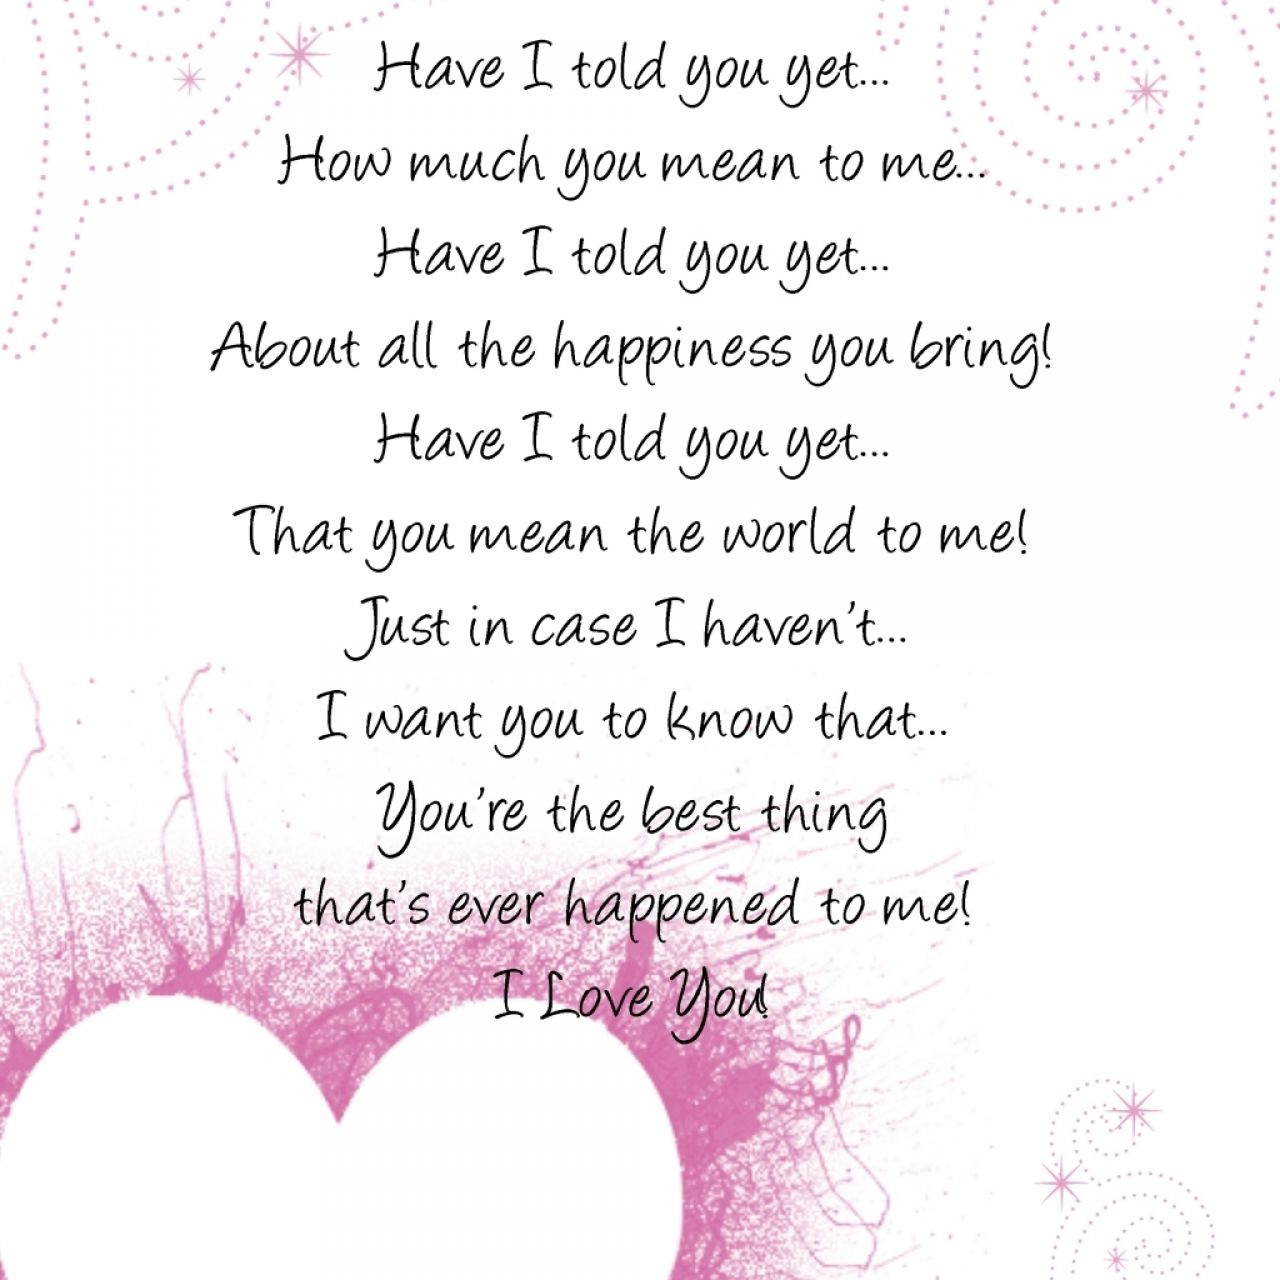 Unique Love Quotes Love Poems And Quotes For Him  Best Friends  Pinterest  Poem